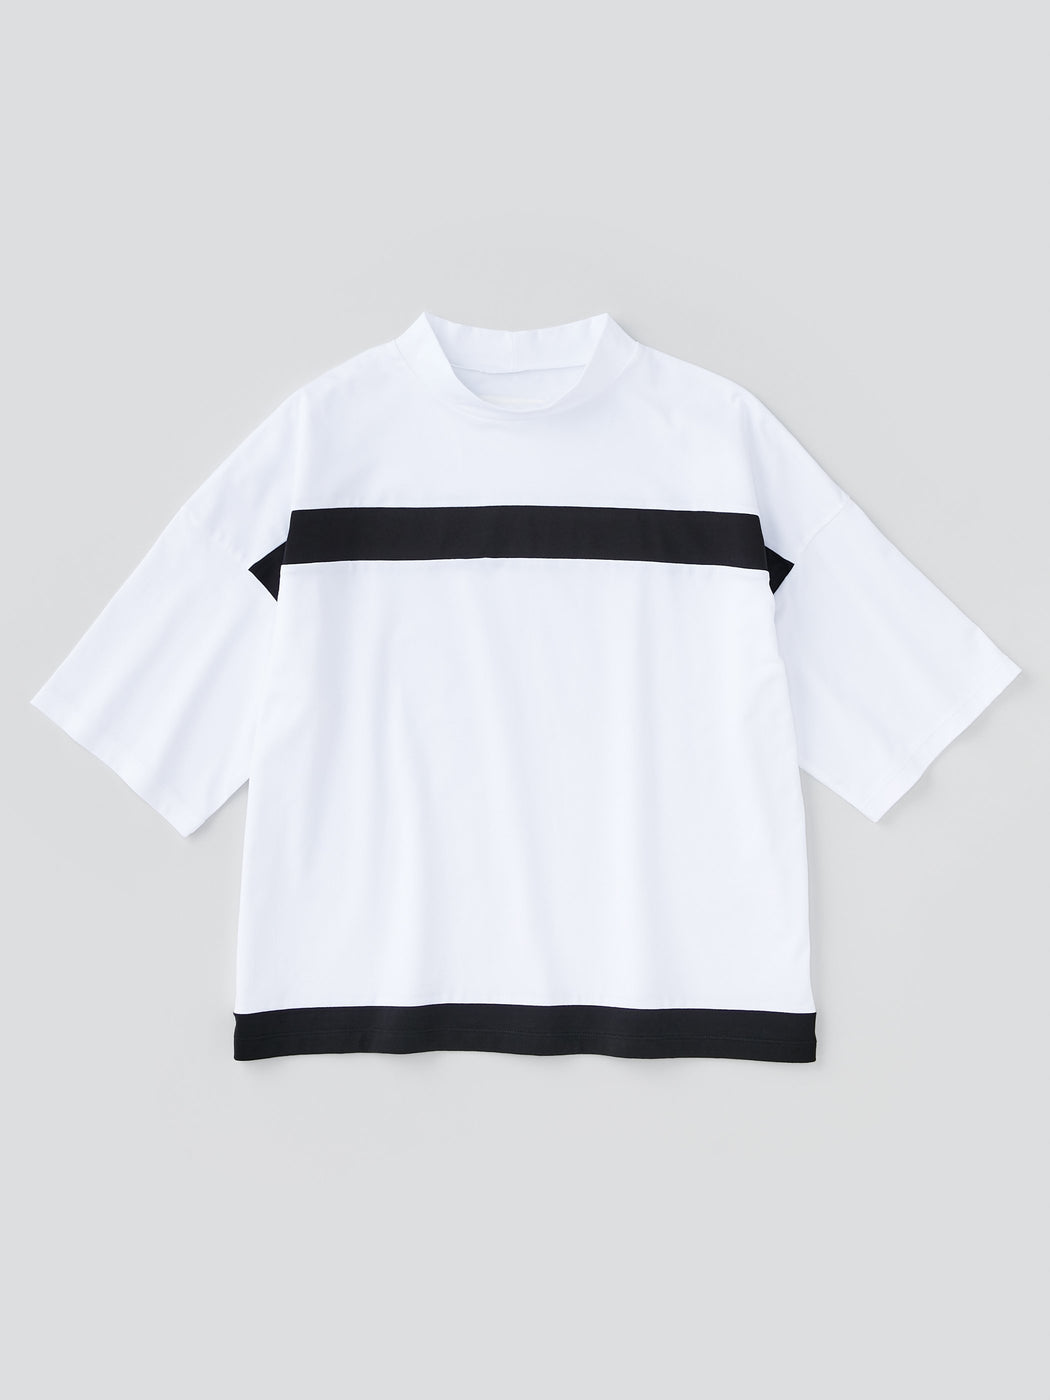 ALOYE Color Blocks Women's High Neck Short Sleeve T-shirt White-Black